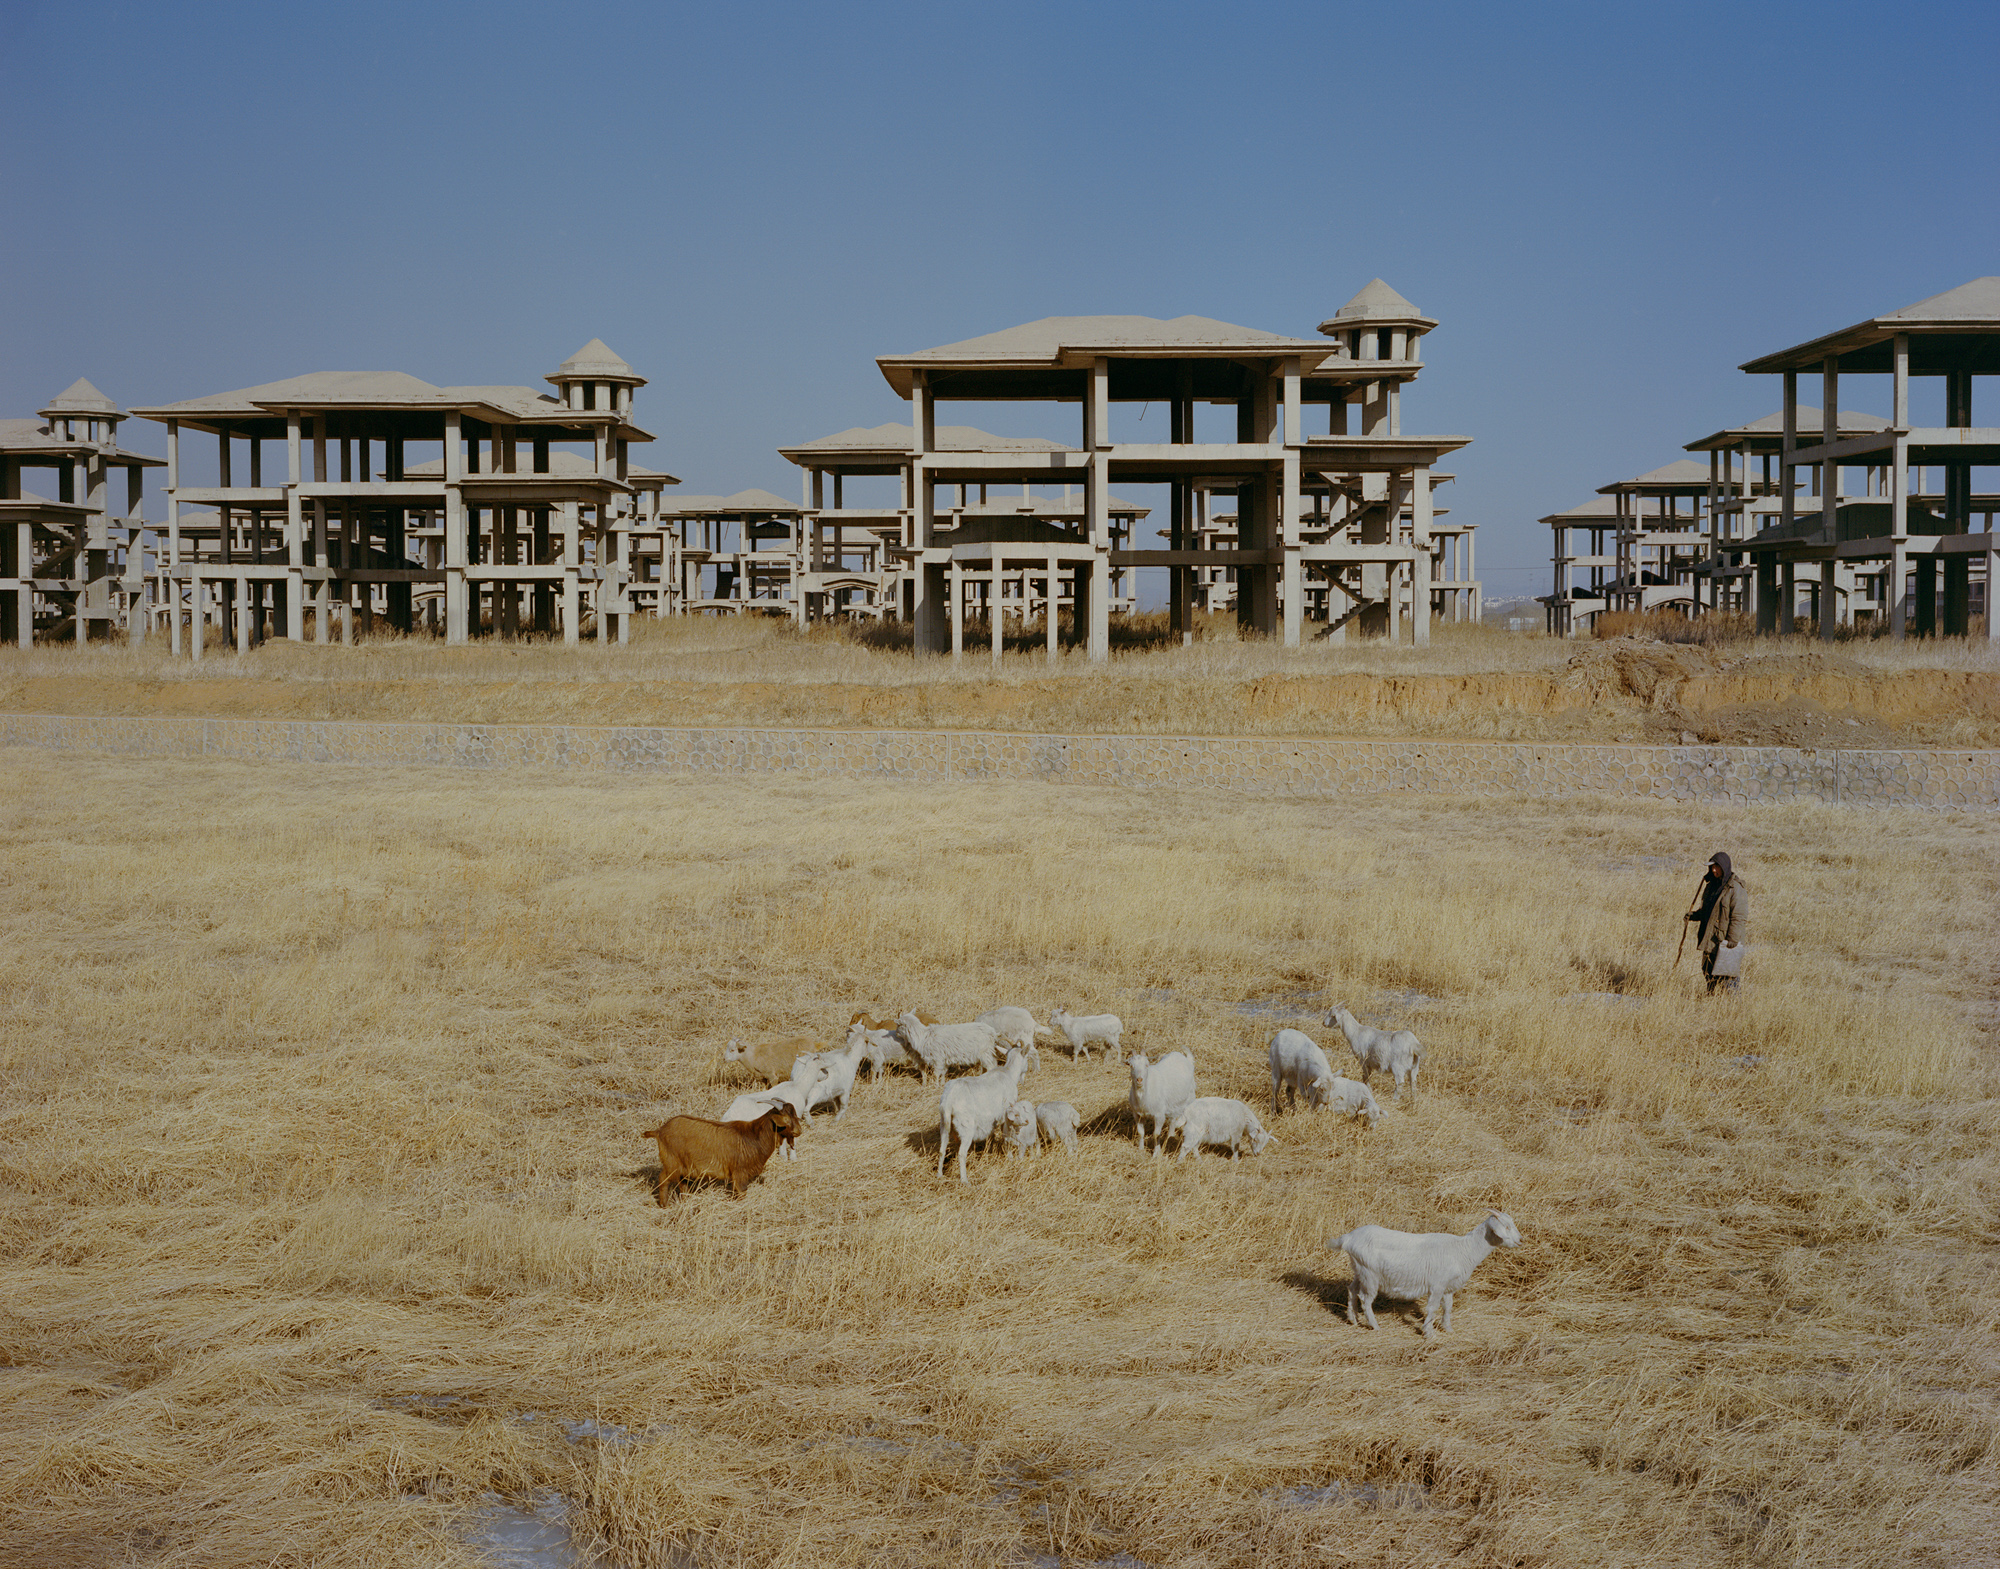 Lan Xianquan, 43, herds goats near an unfinished five-star hotel in Fuxin. Construction was abandoned five years ago because of the lack of follow-up investment. Lan worked for Haizhou Mine until it shut down in 2005 and has practiced goat husbandry in the years since.